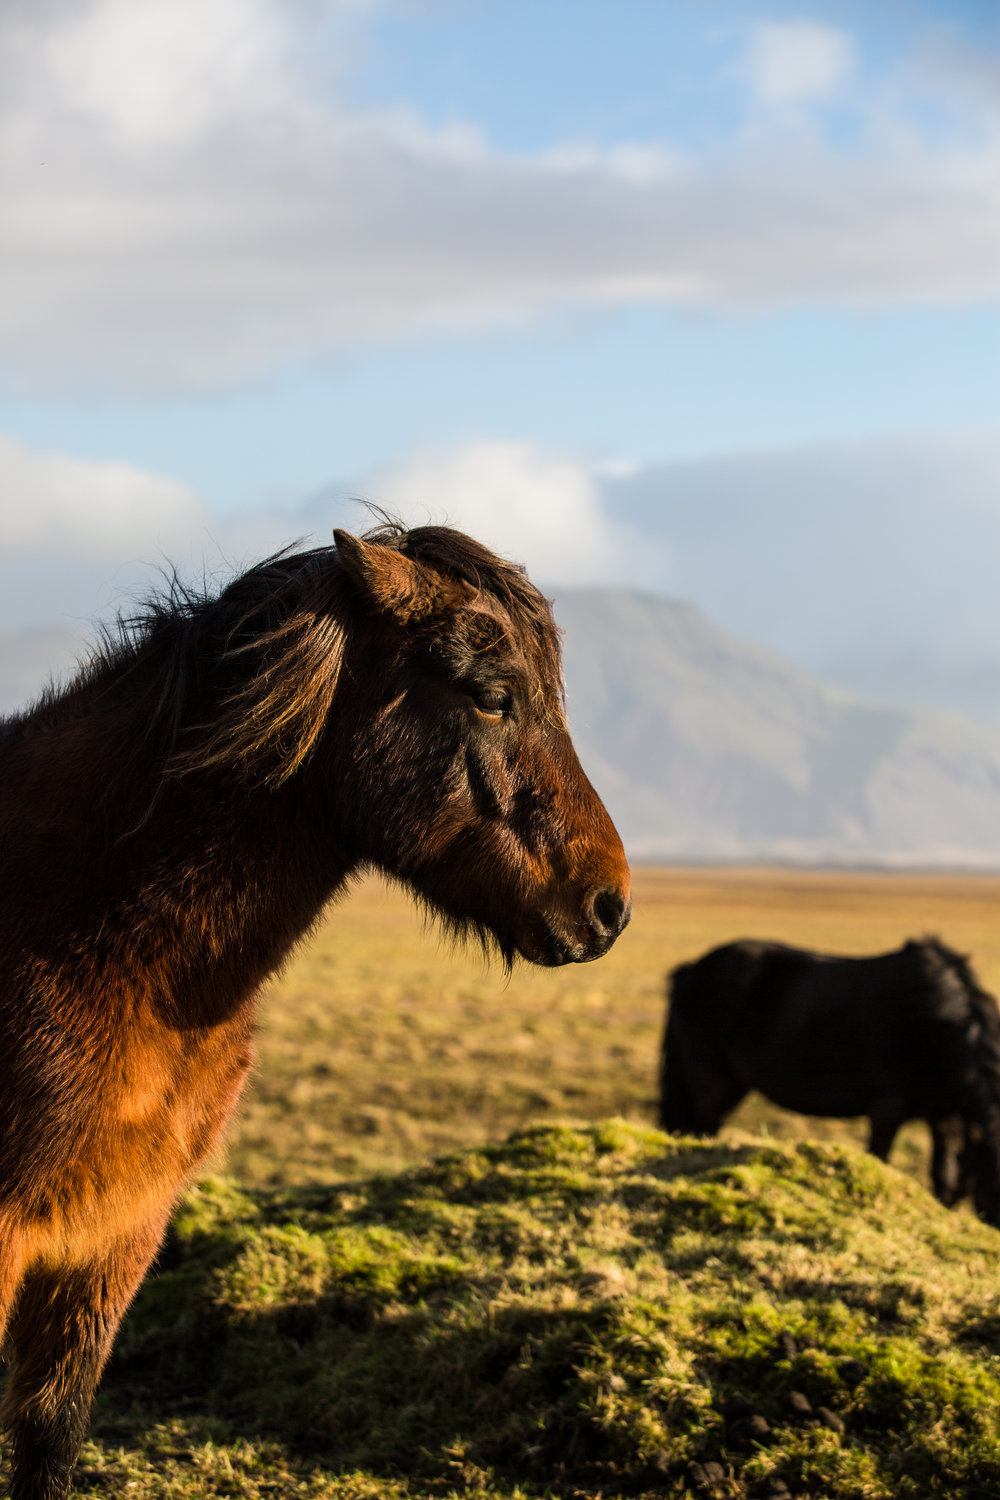 The history of the Icelandic horse goes back to the 9th century when Norse clans brought them over from the east. While small, they are known for their strength, resilience to cold and disease, with much praise also going to the two specialized gaits they have adapted over time. Riding these beasts is a different horseback experience than many back home may be used to.